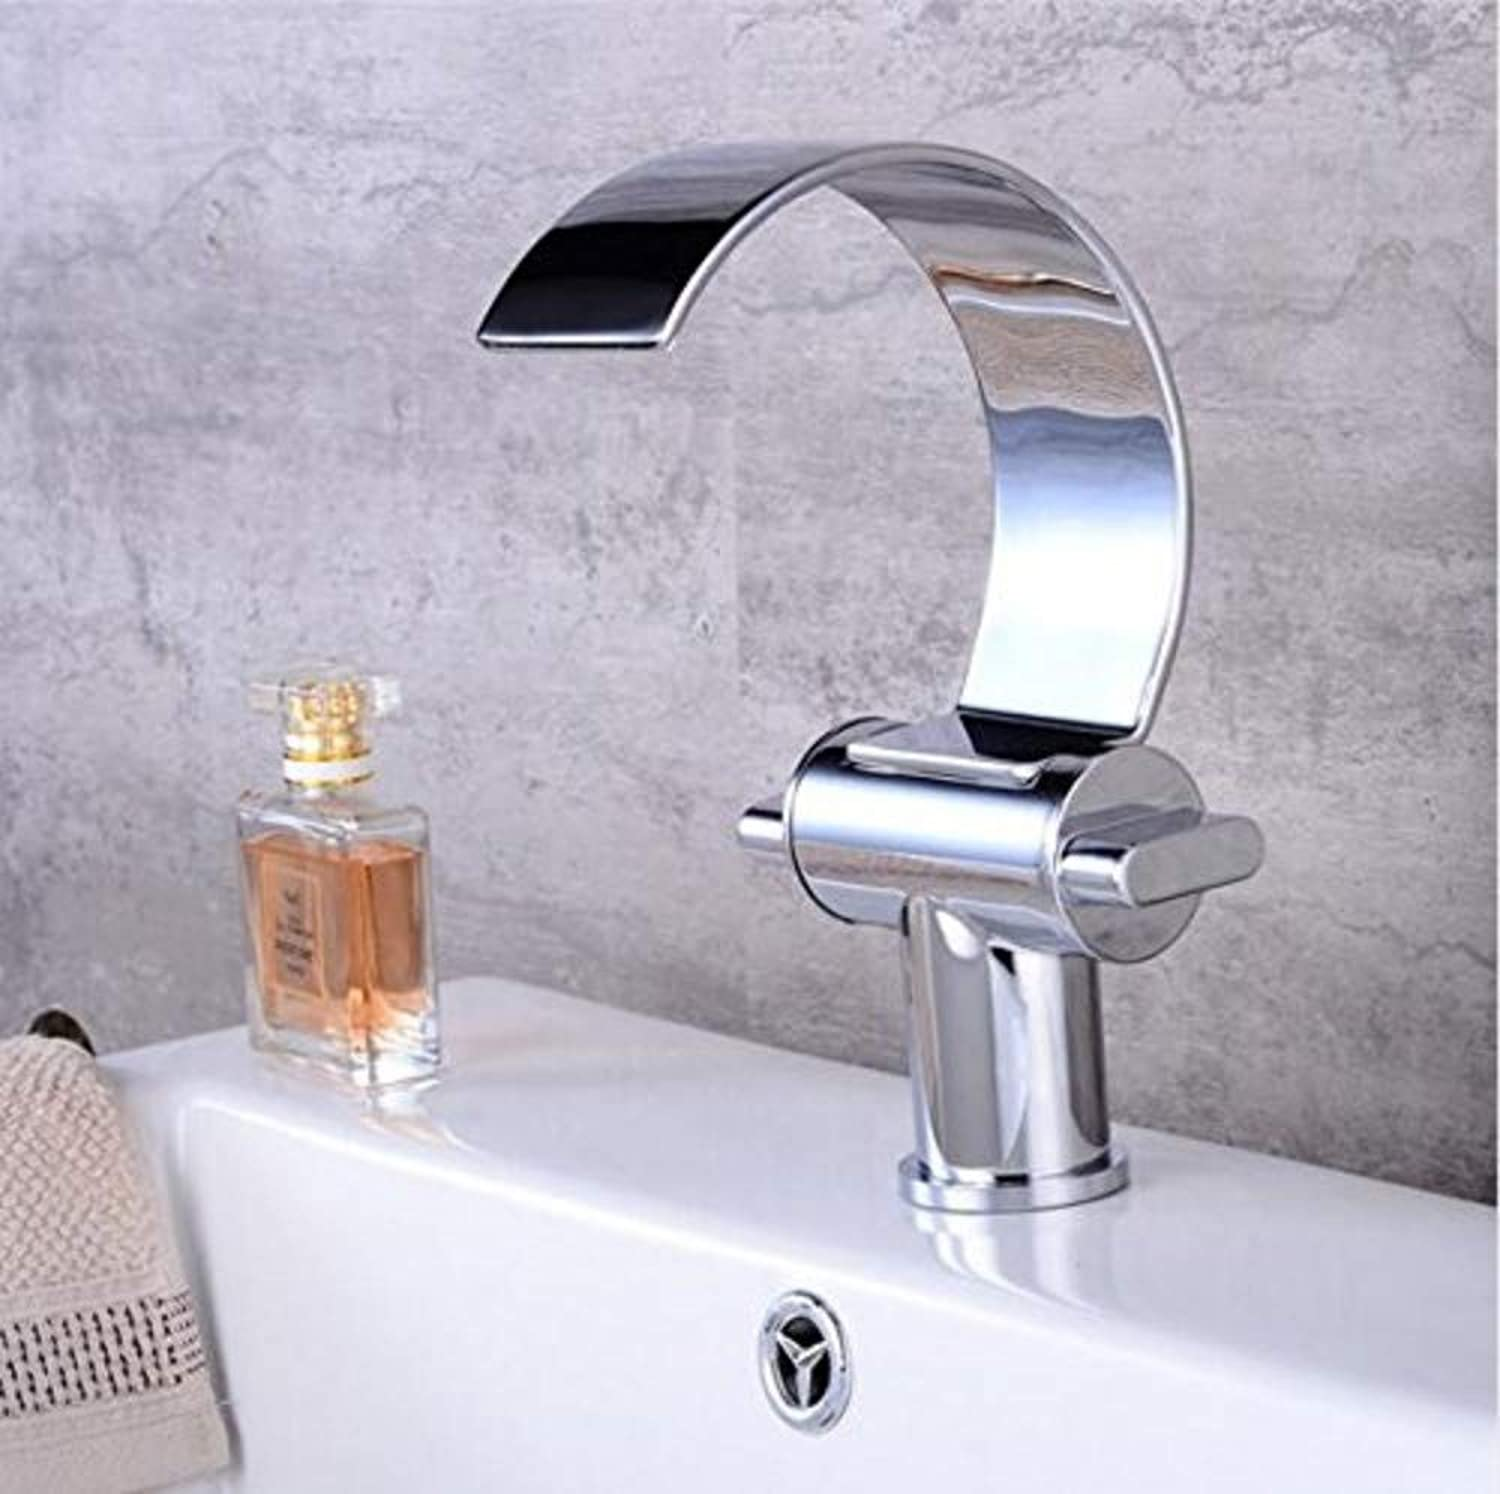 Bathroom Sink Basin Lever Mixer Tap Faucet Basin Vanity Sink Faucet Waterfall Bathroom Mixer Deck Mounted Tap